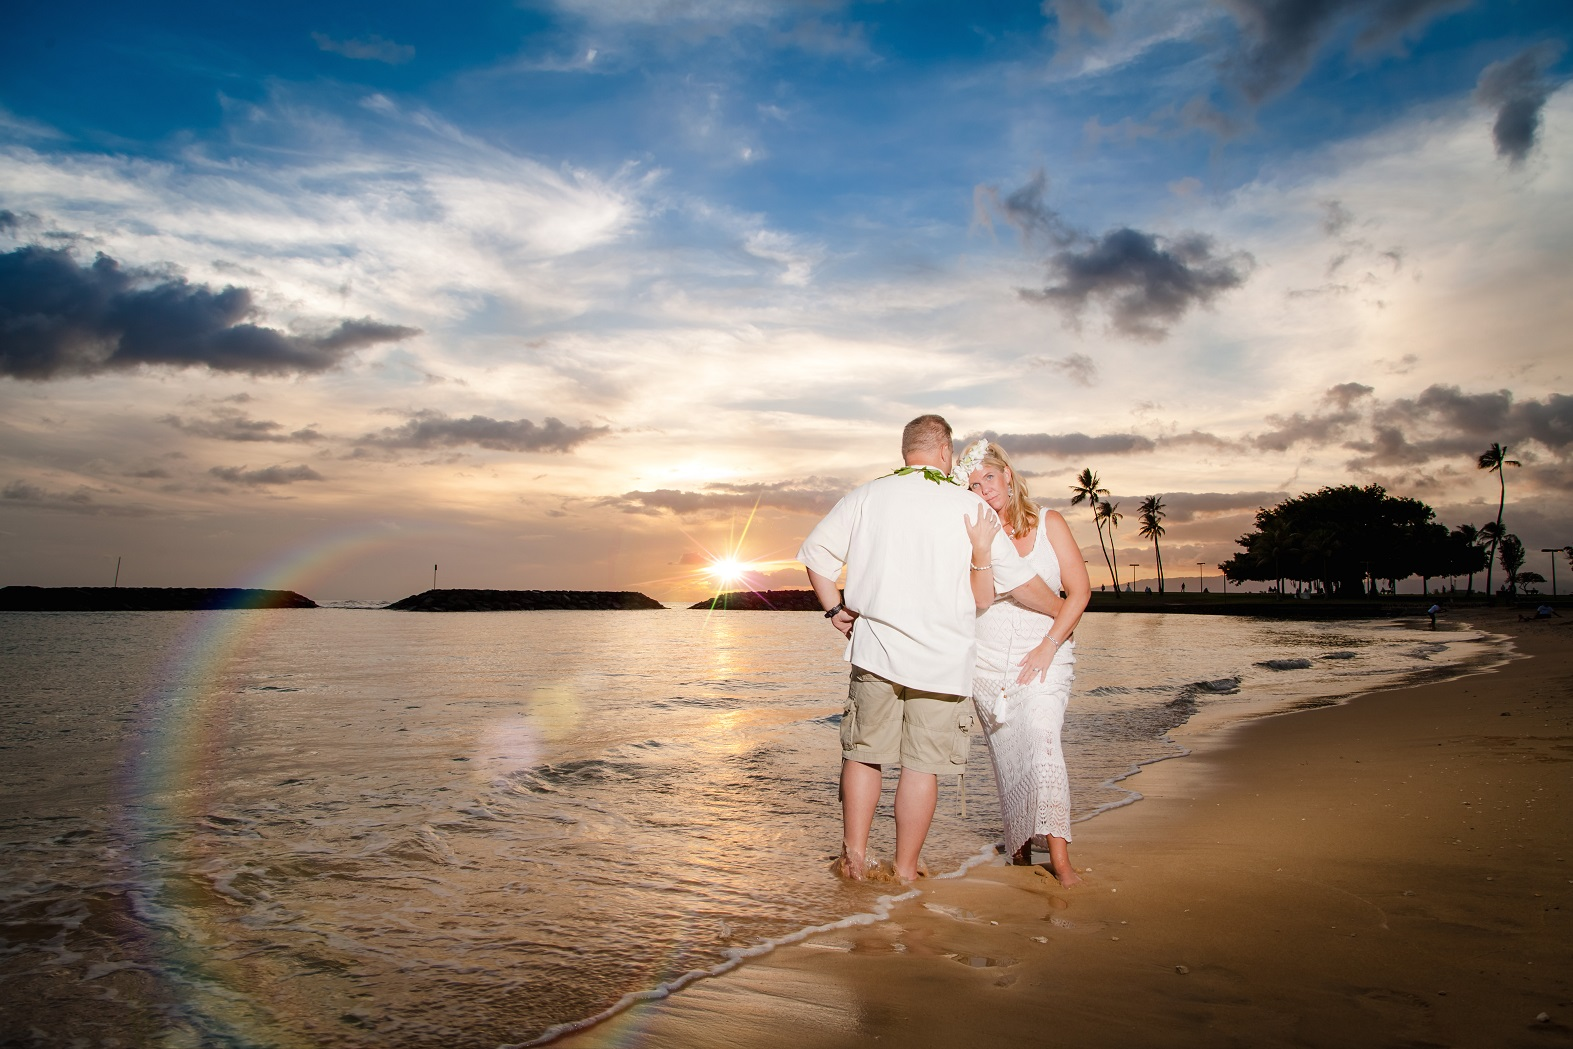 sunset beach wedding bride groom portrait waikiki oahu hawaii